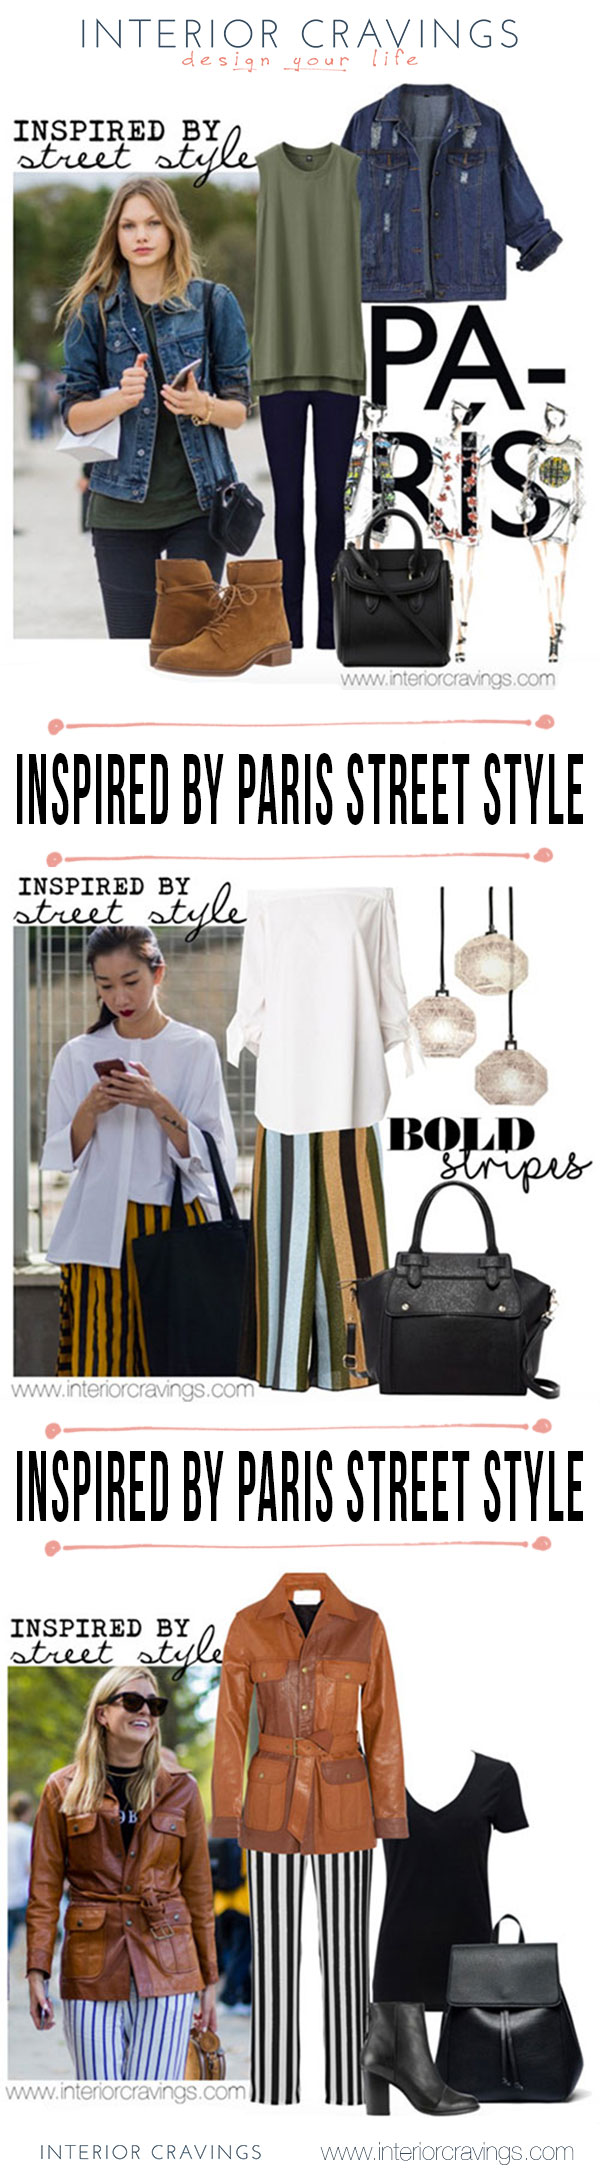 paris street style outfit inspiration